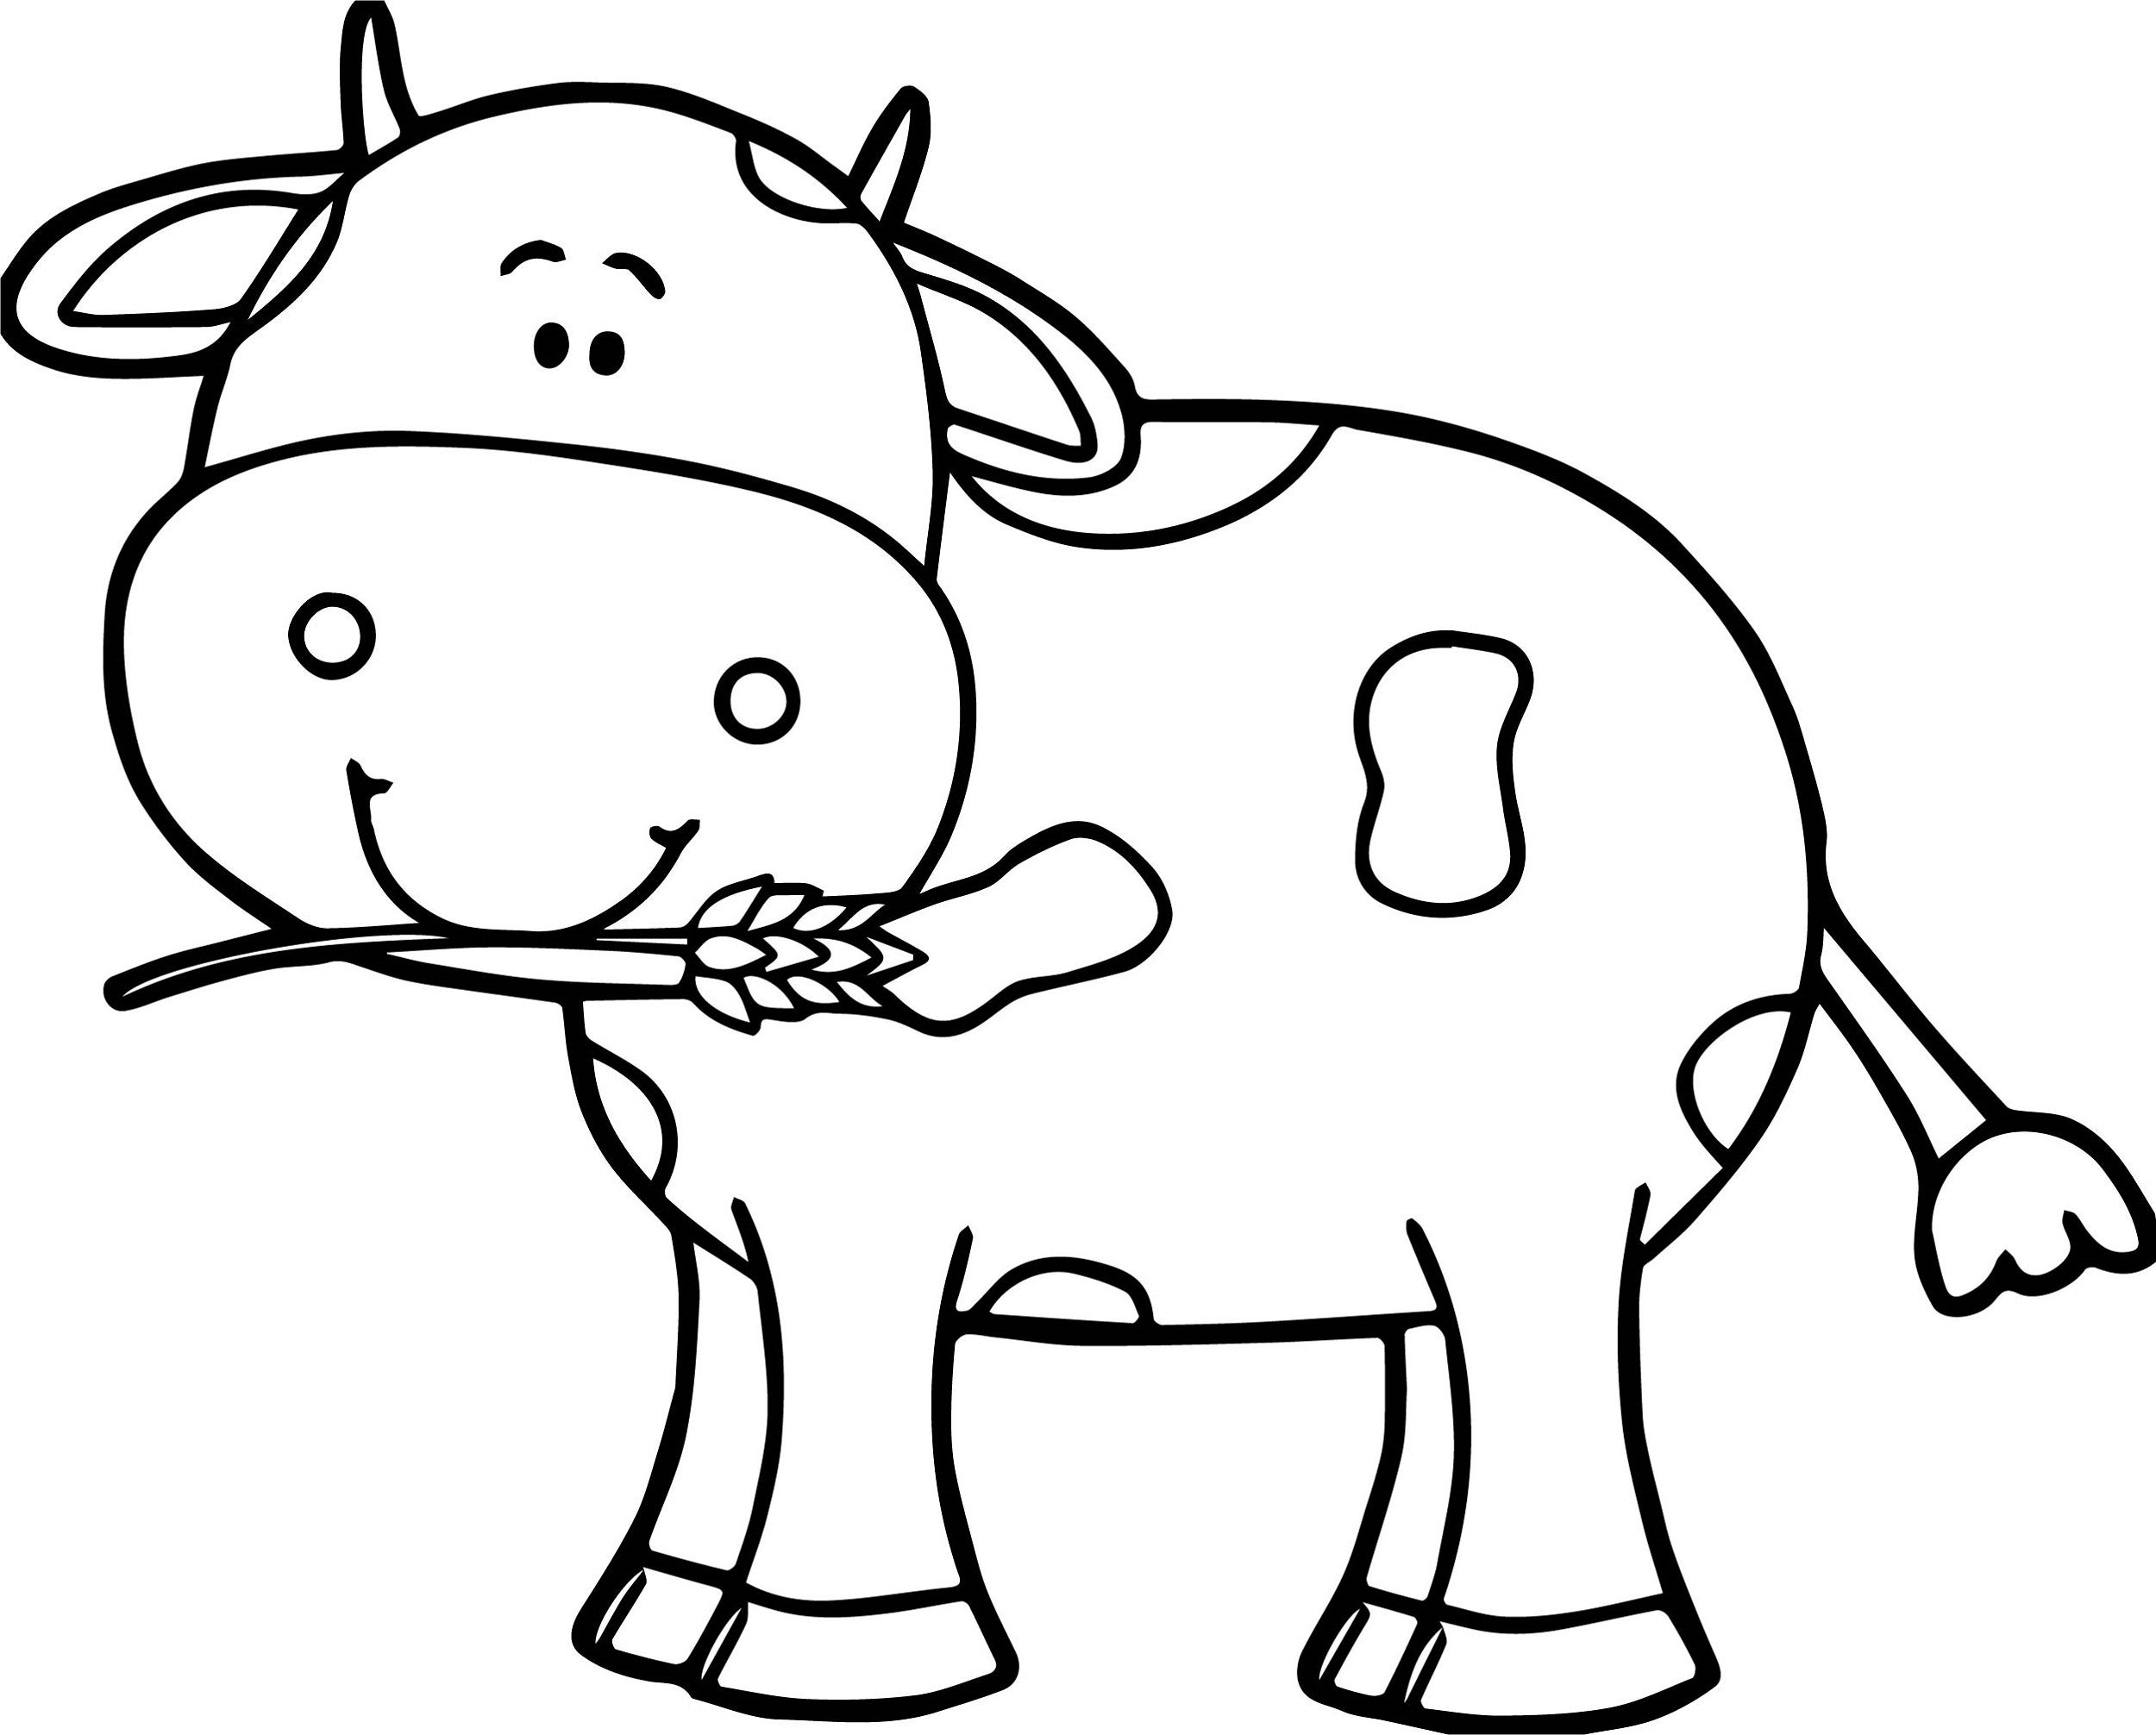 picture of a cow to colour cute cow coloring page cow coloring pages animal picture cow to a colour of